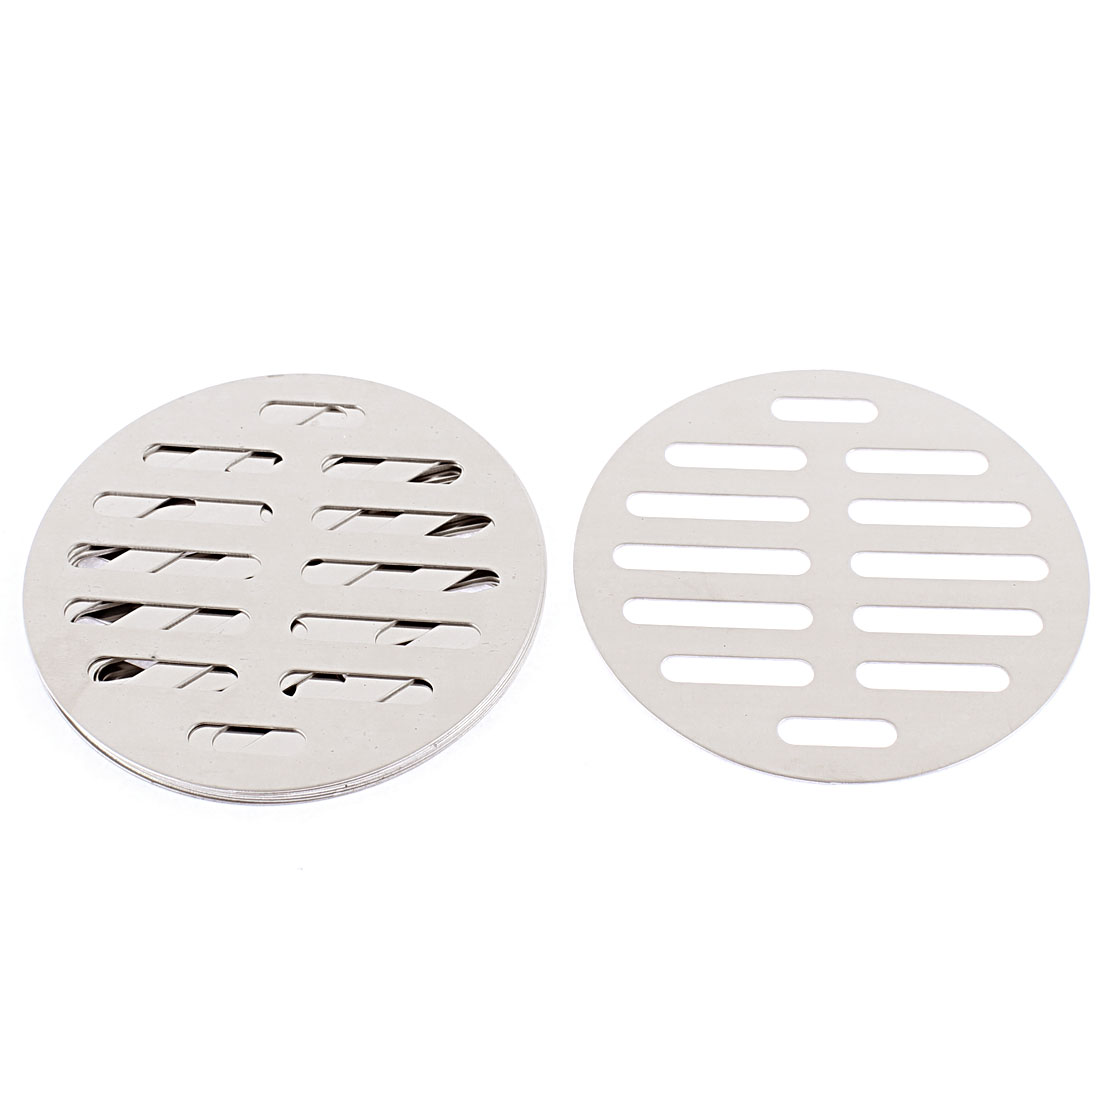 "Kitchen Bathroom Round Floor Drain Drainer Cover 4"" 10cm Dia 8Pcs"